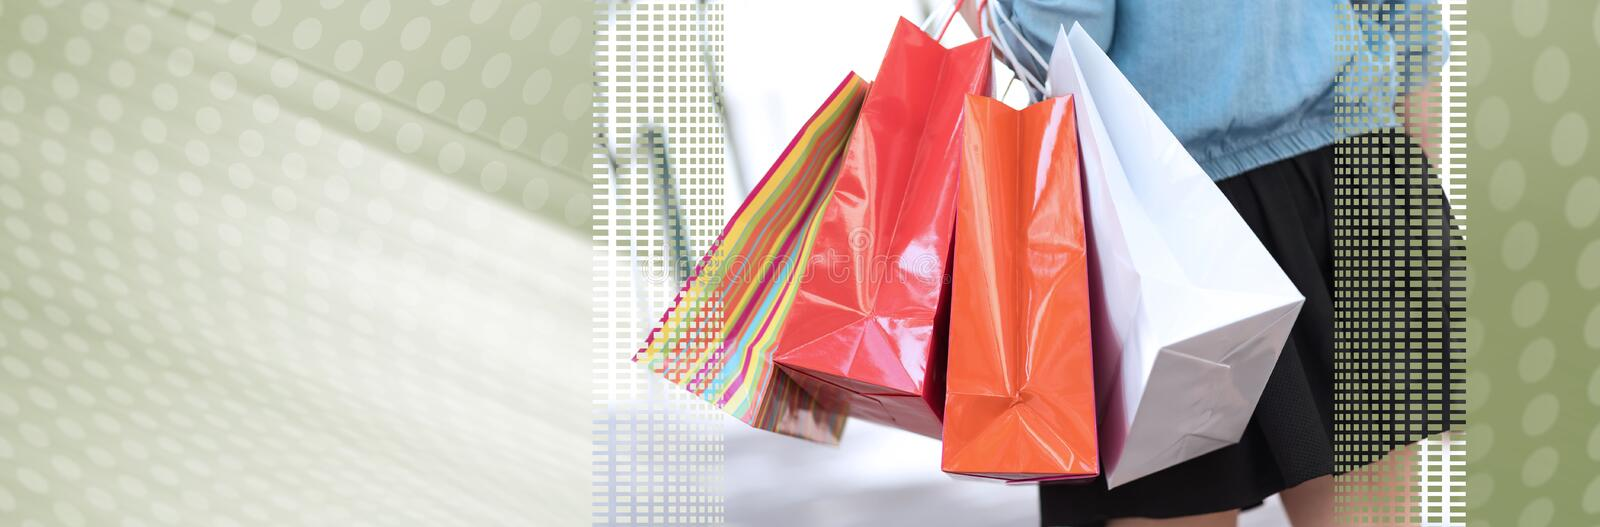 Woman walking and holding shopping bags; panoramic banner royalty free stock images